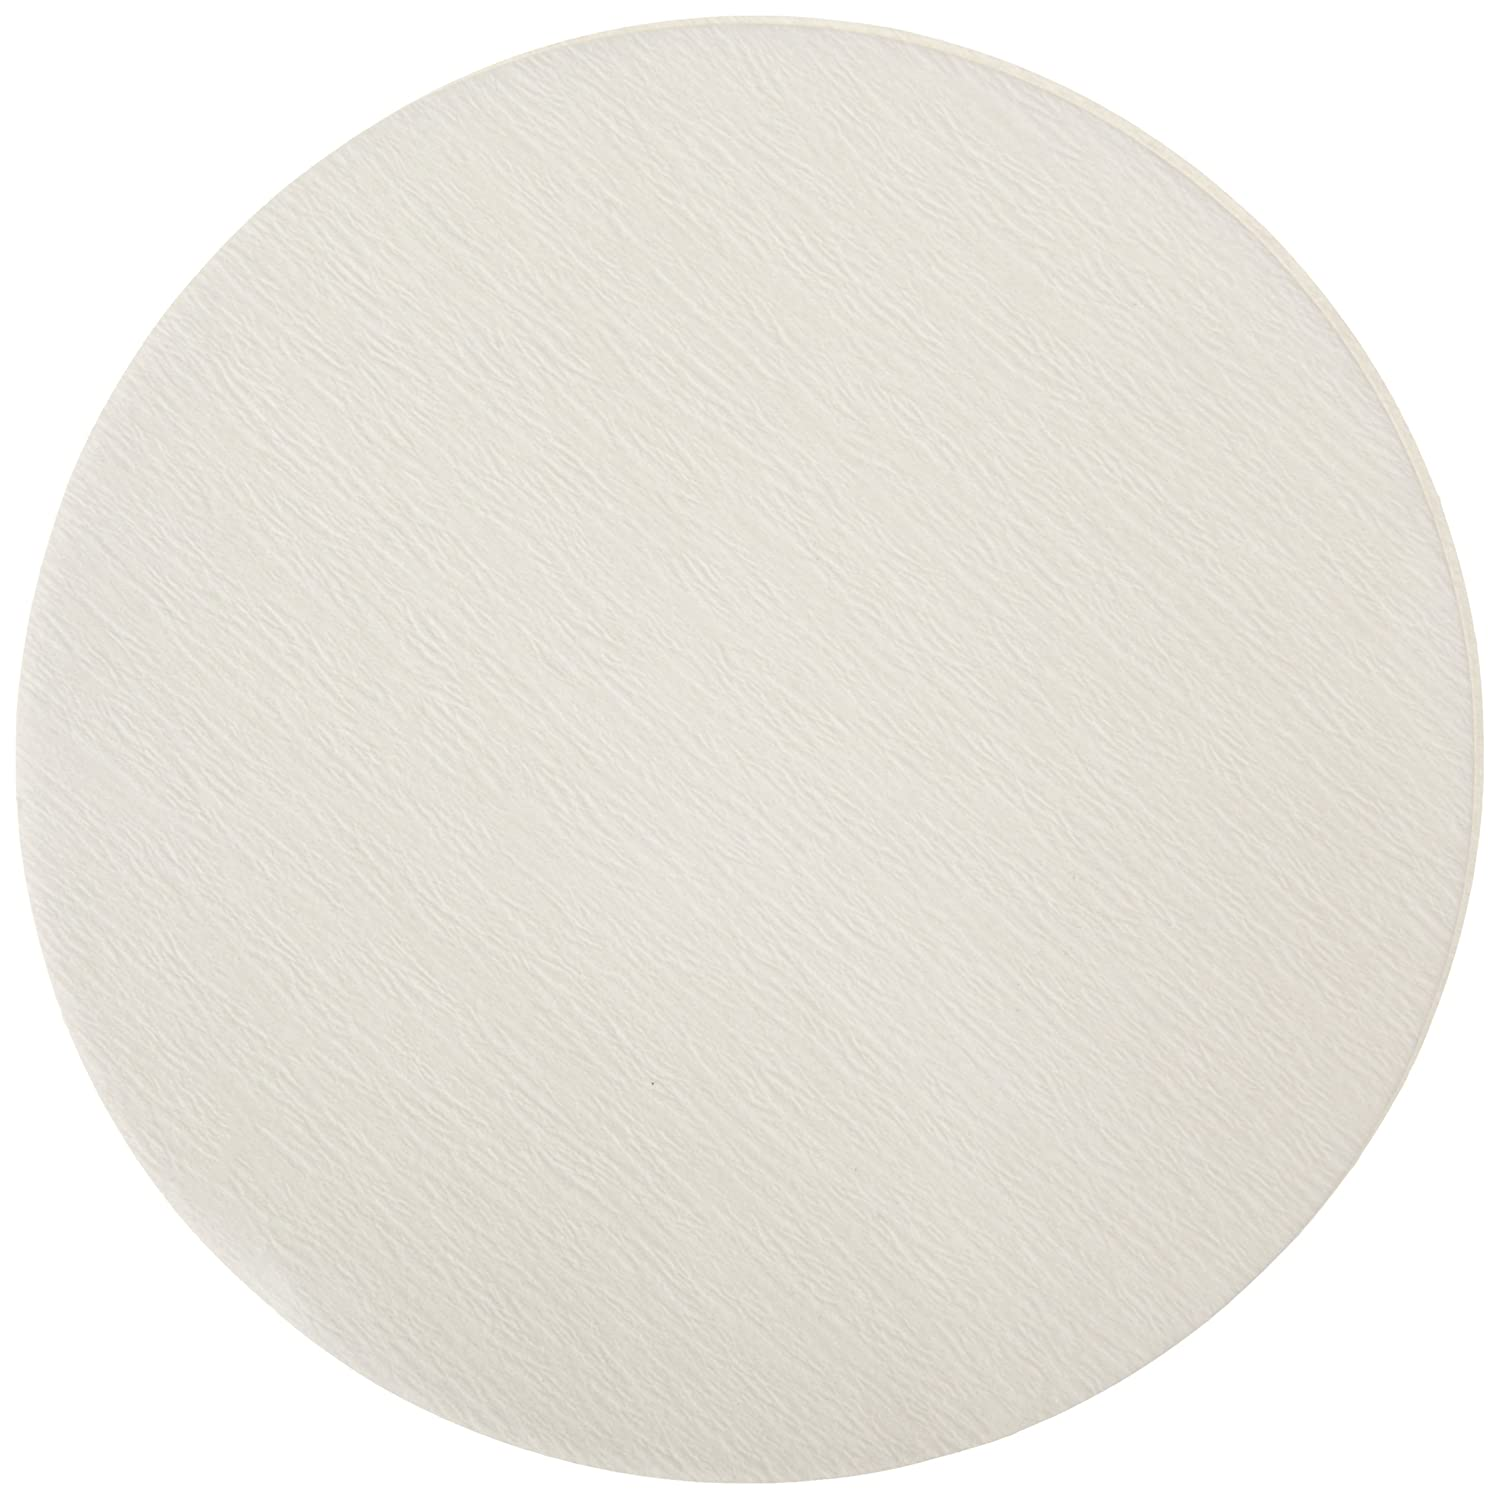 Pack of 100 Circle Medium-Fast Speed GE Healthcare Life Sciences Crepe Surface Grade 202 12.5cm Diameter GE Whatman Reeve Angel 5202-125 Qualitative Filter Paper